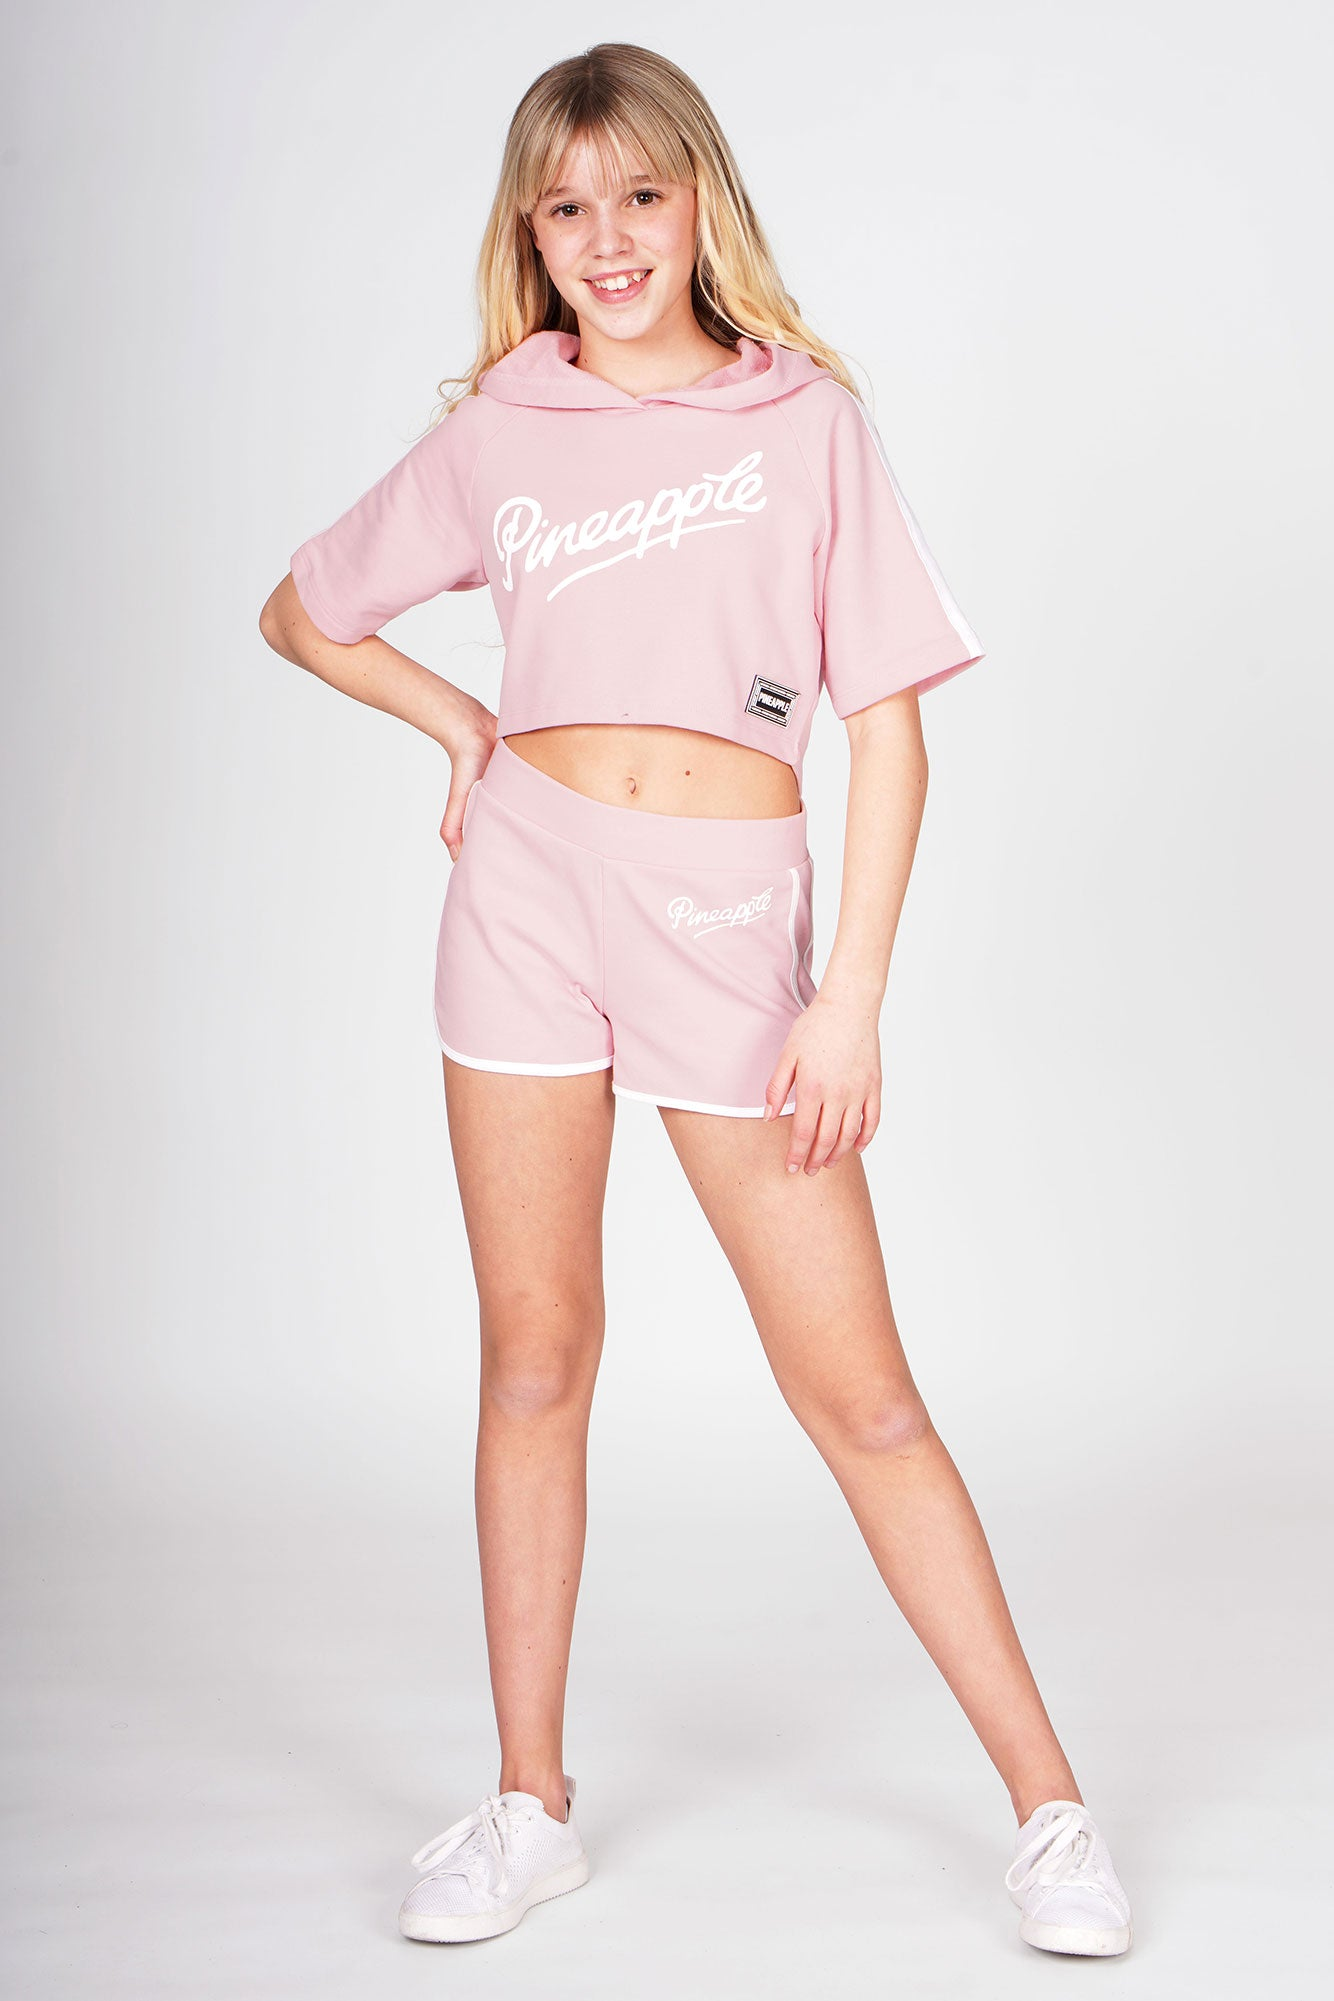 Girl wearing Pink Sporty Shorts and pink short sleeve crop hoodie